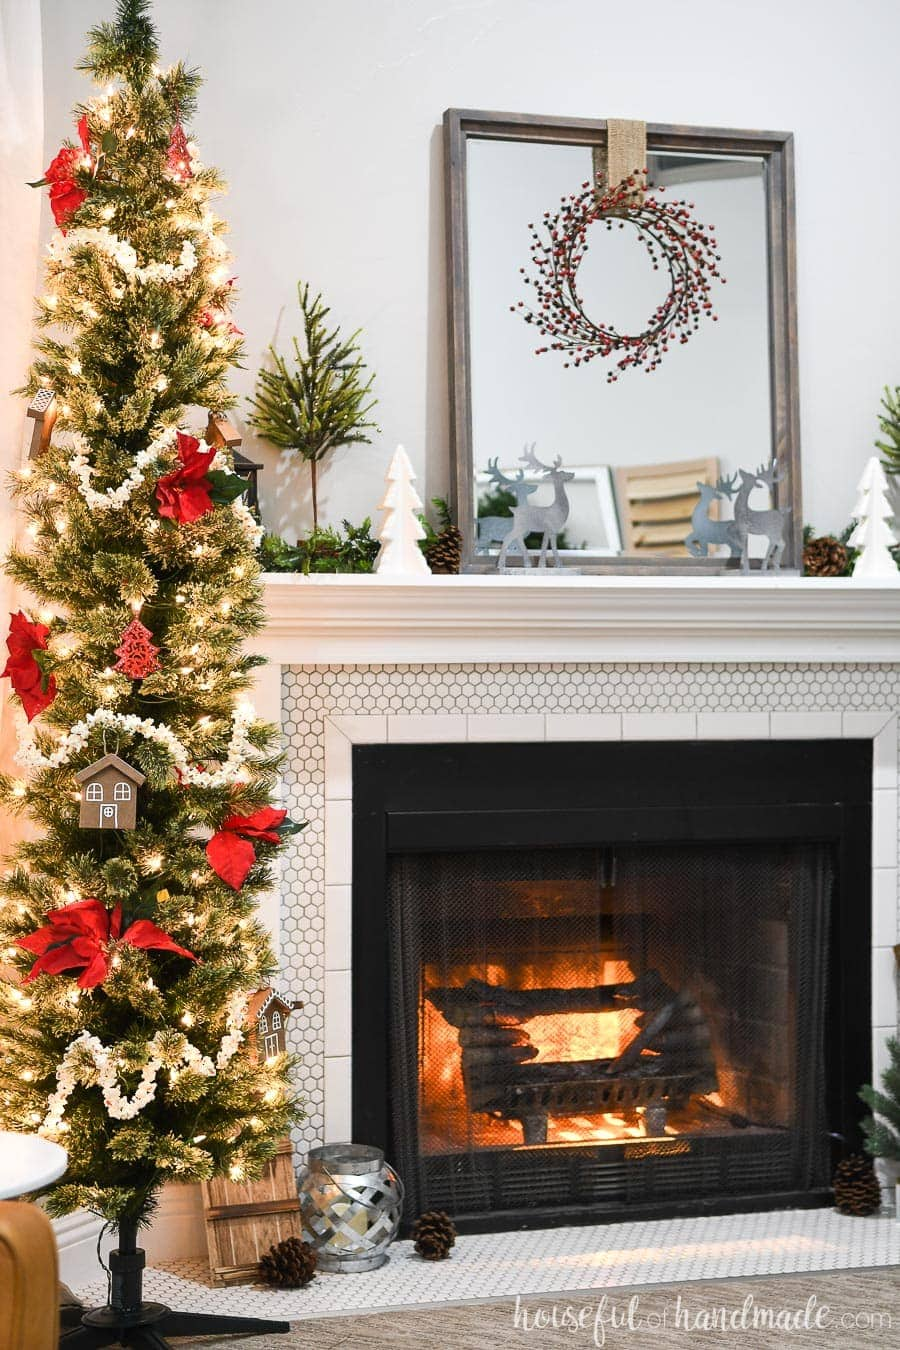 Pencil Christmas tree decorated with classic Christmas touches like popcorn garland and poinsettia flowers.